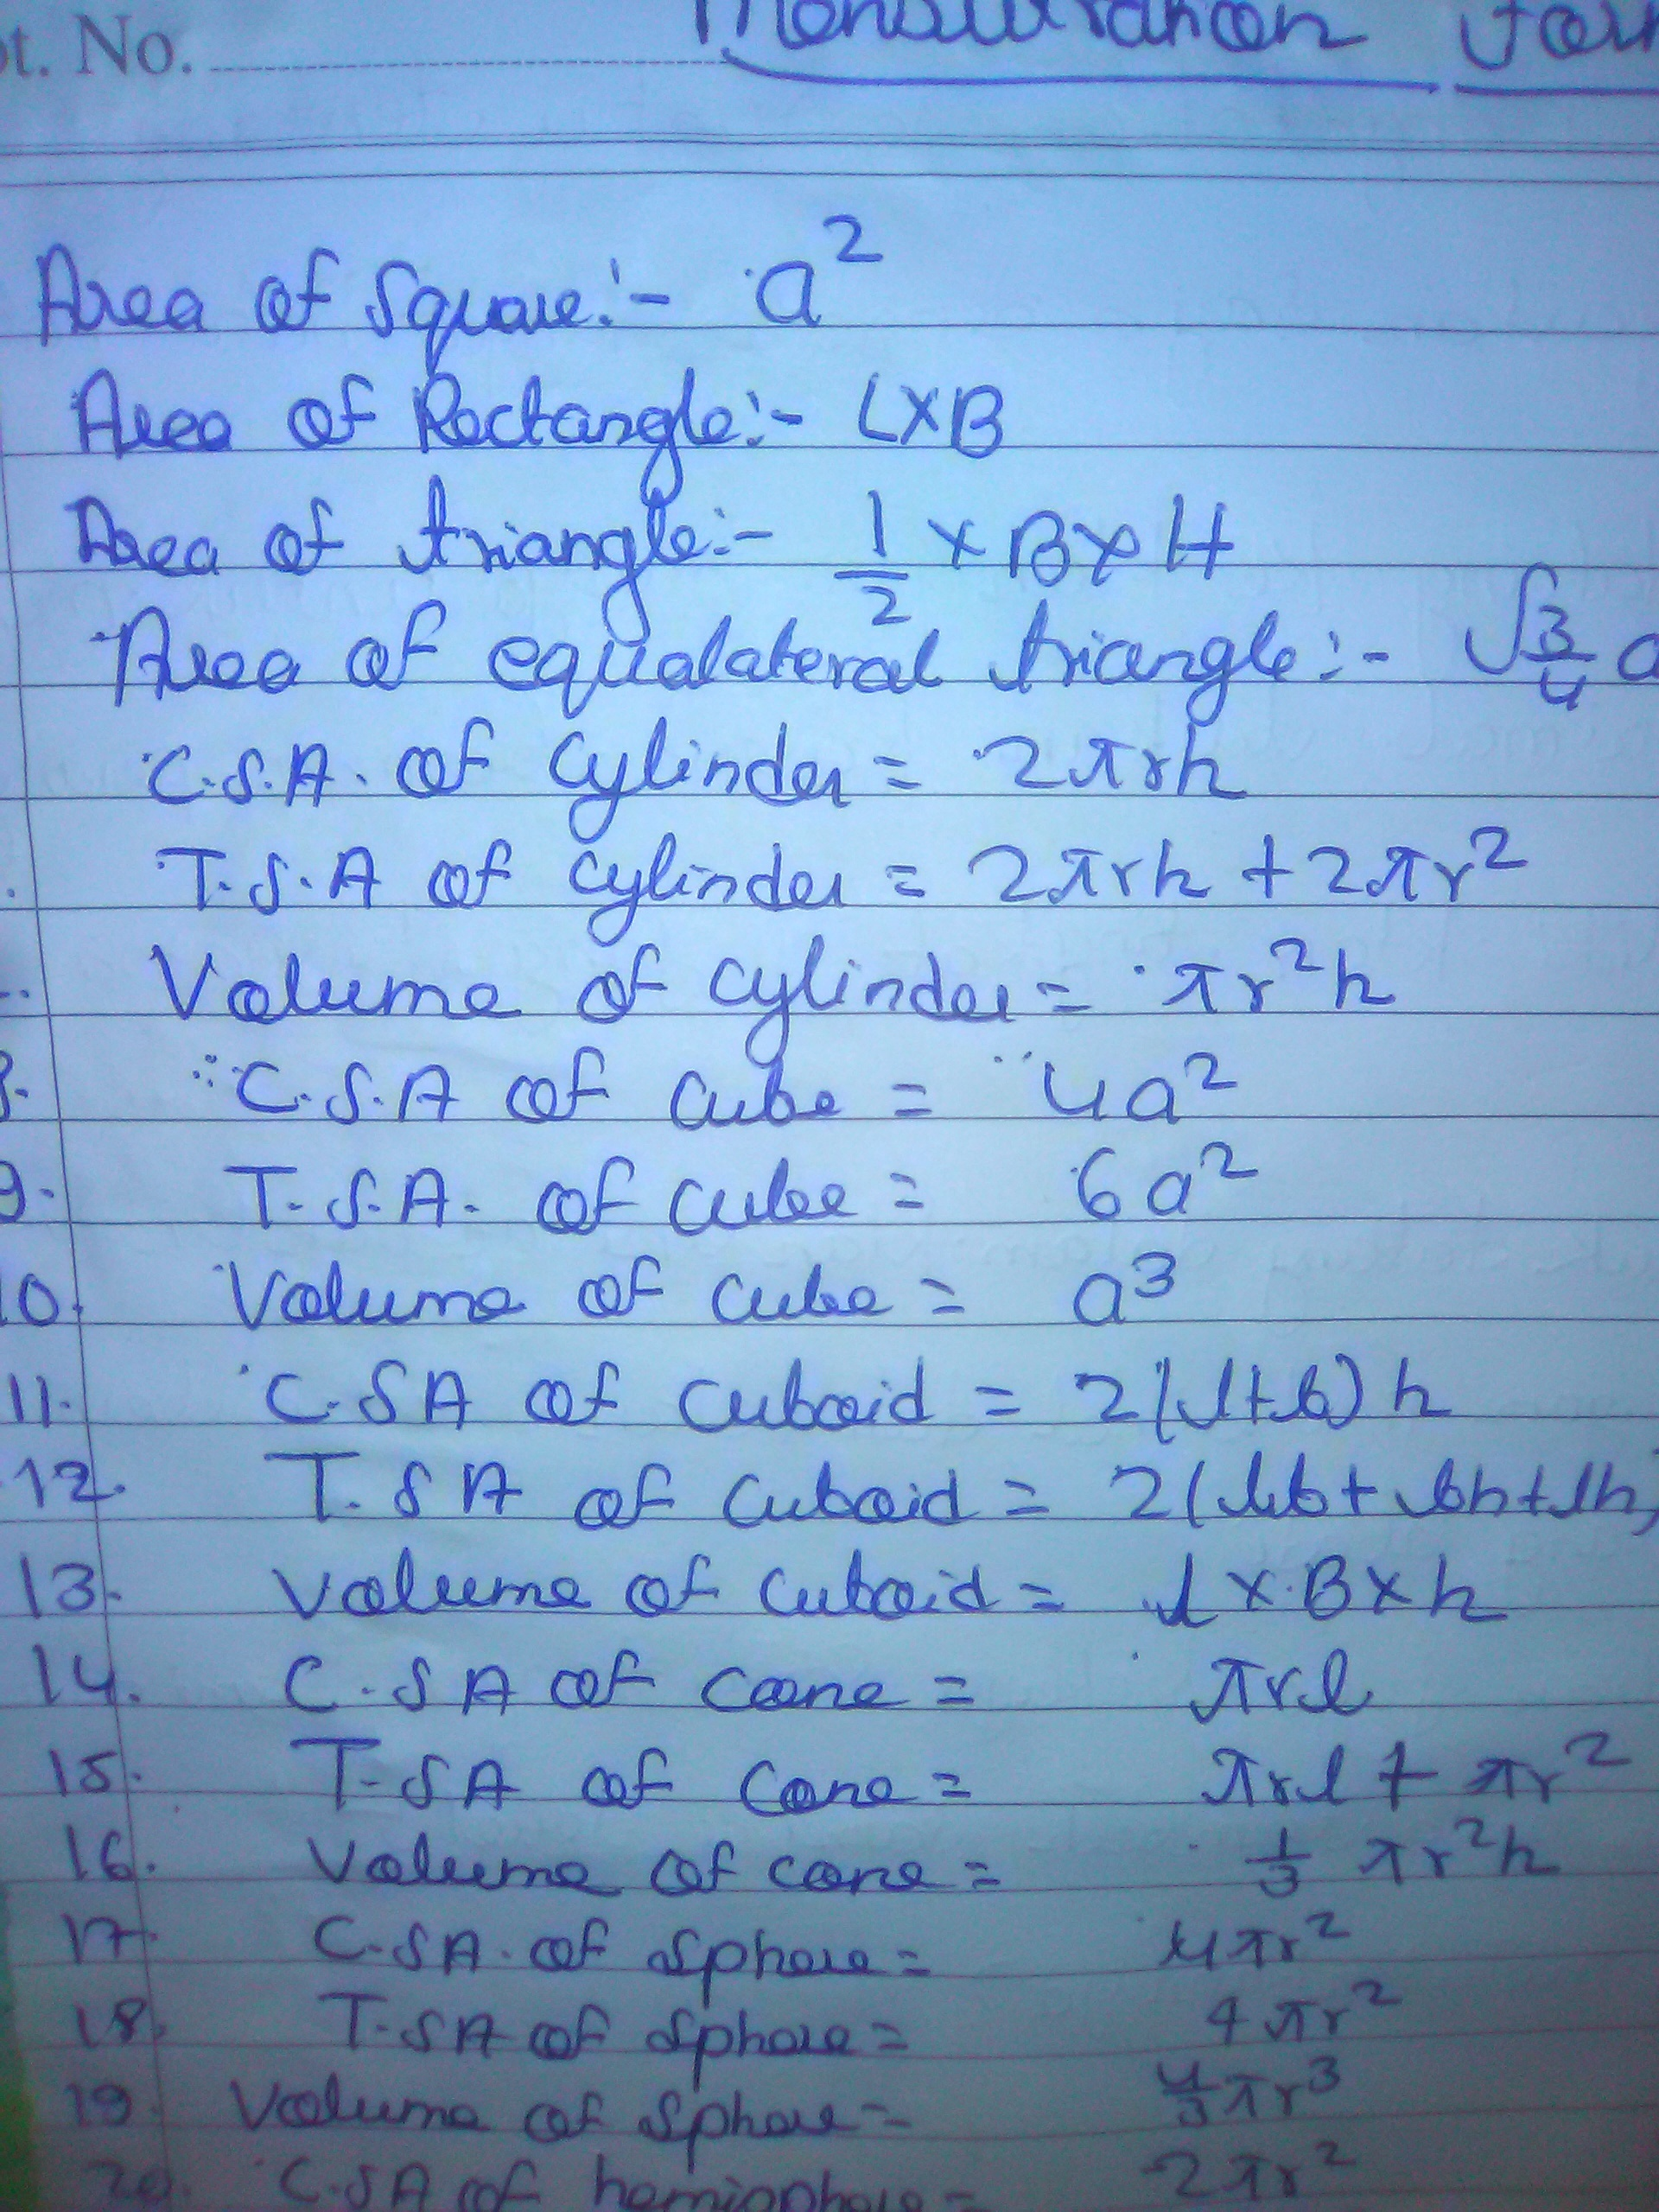 I want all MATHS FORMULAS of CLASS 9 th and 10 th